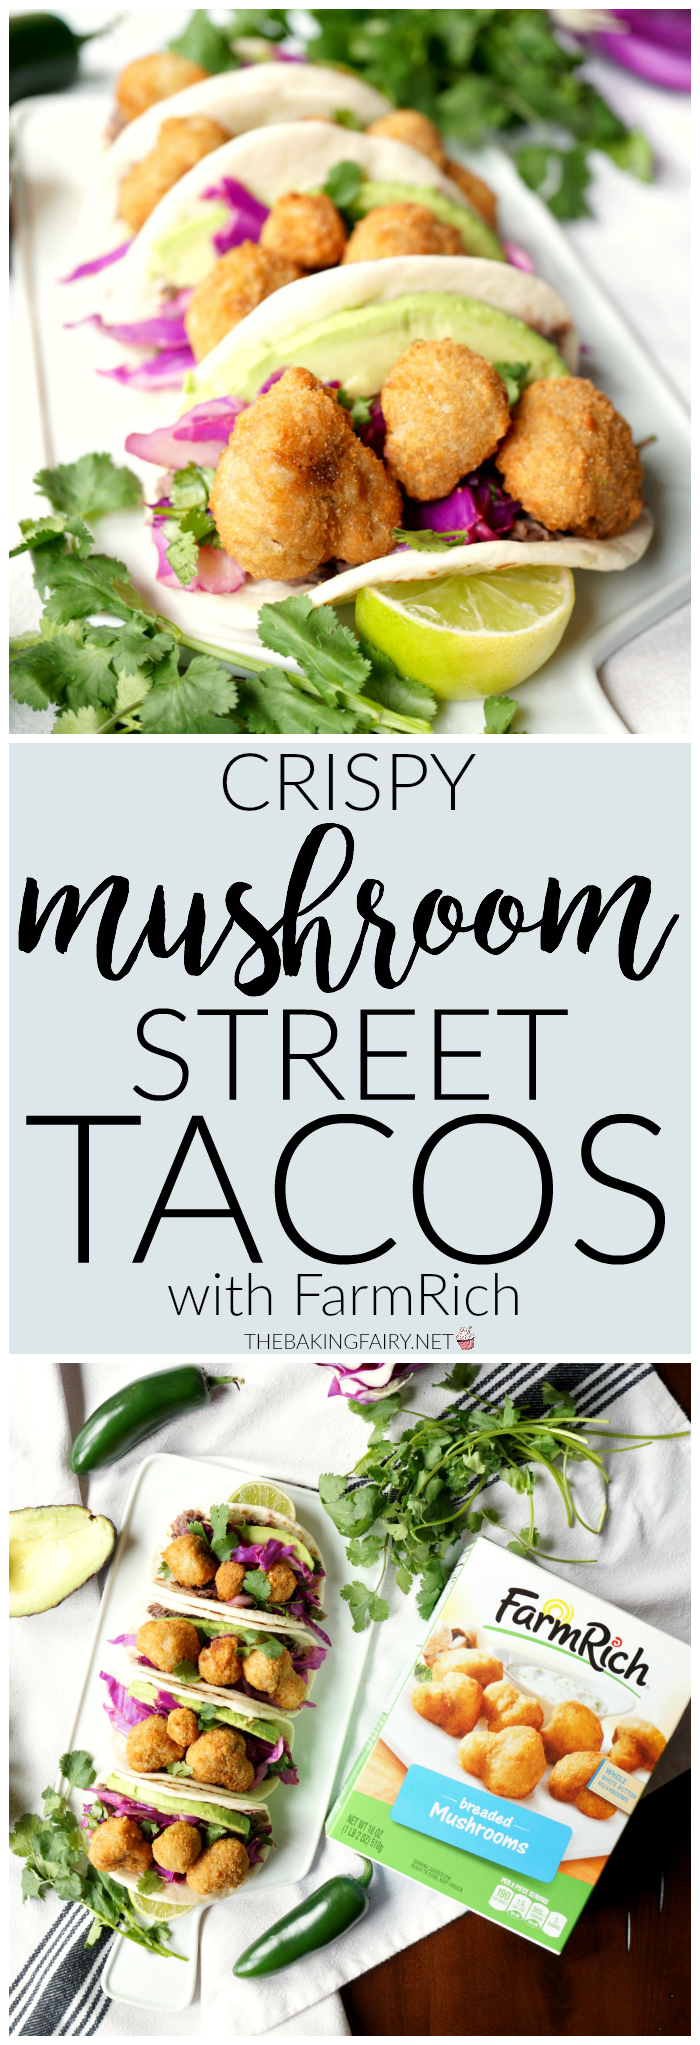 crispy mushroom street tacos with Farm Rich | The Baking Fairy